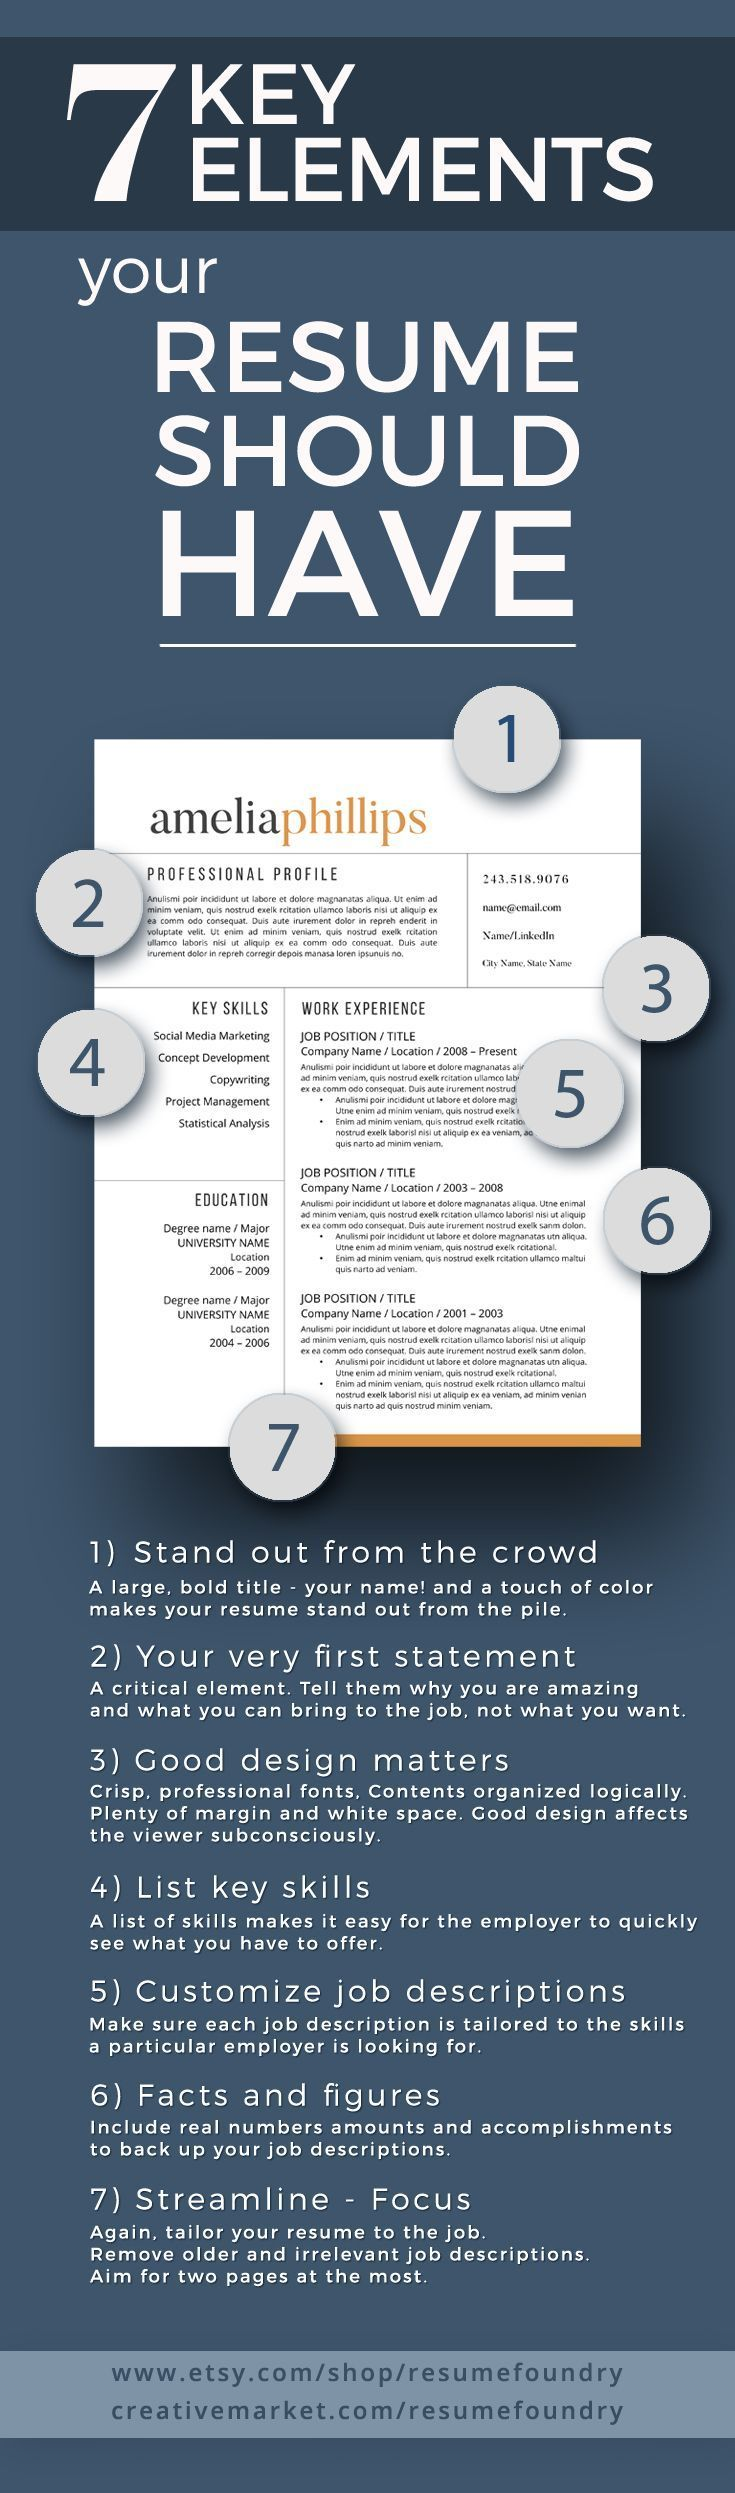 7 Key Elements your resume should have - does yours?